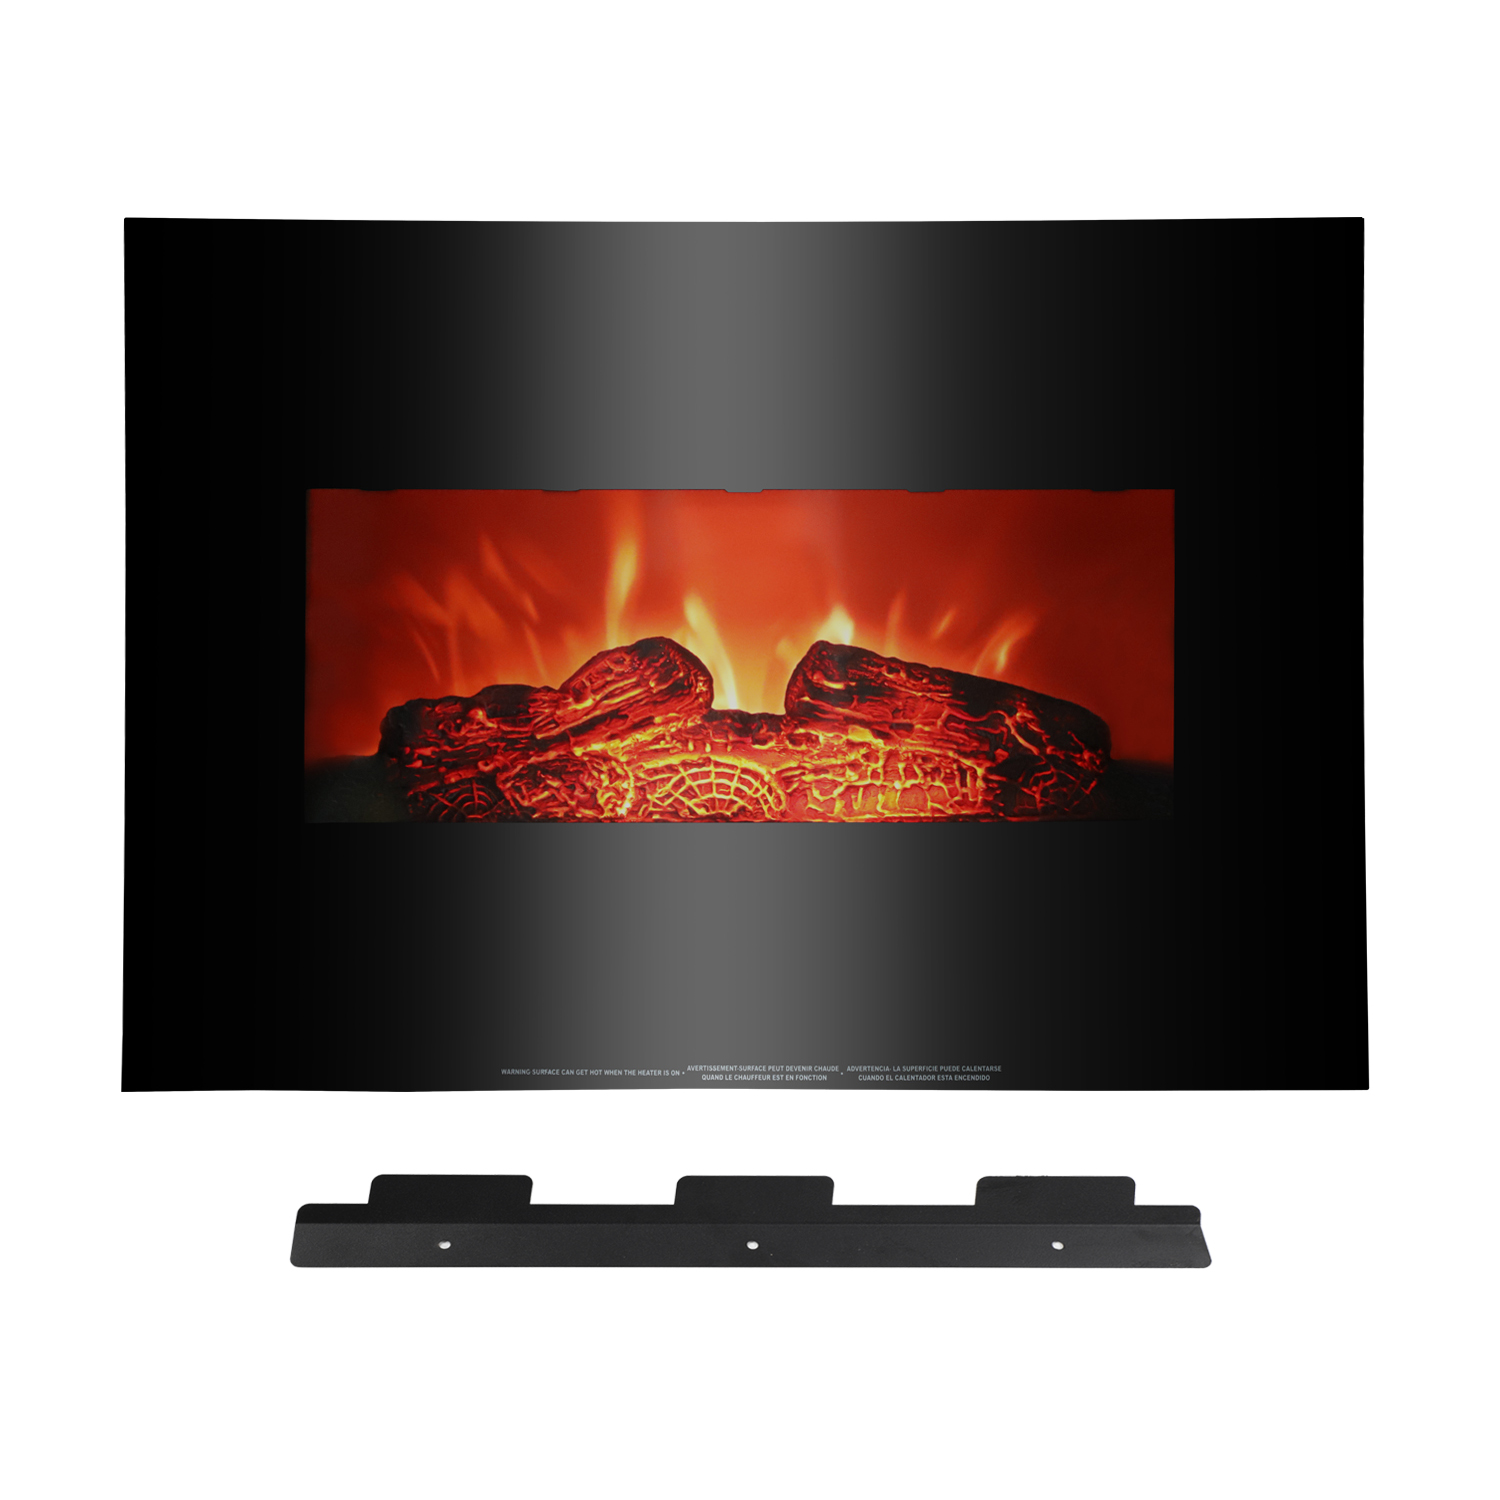 Ktaxon Electric Fireplace,Electric Fireplace Heater for Home,1400W Flame Electric Fireplace